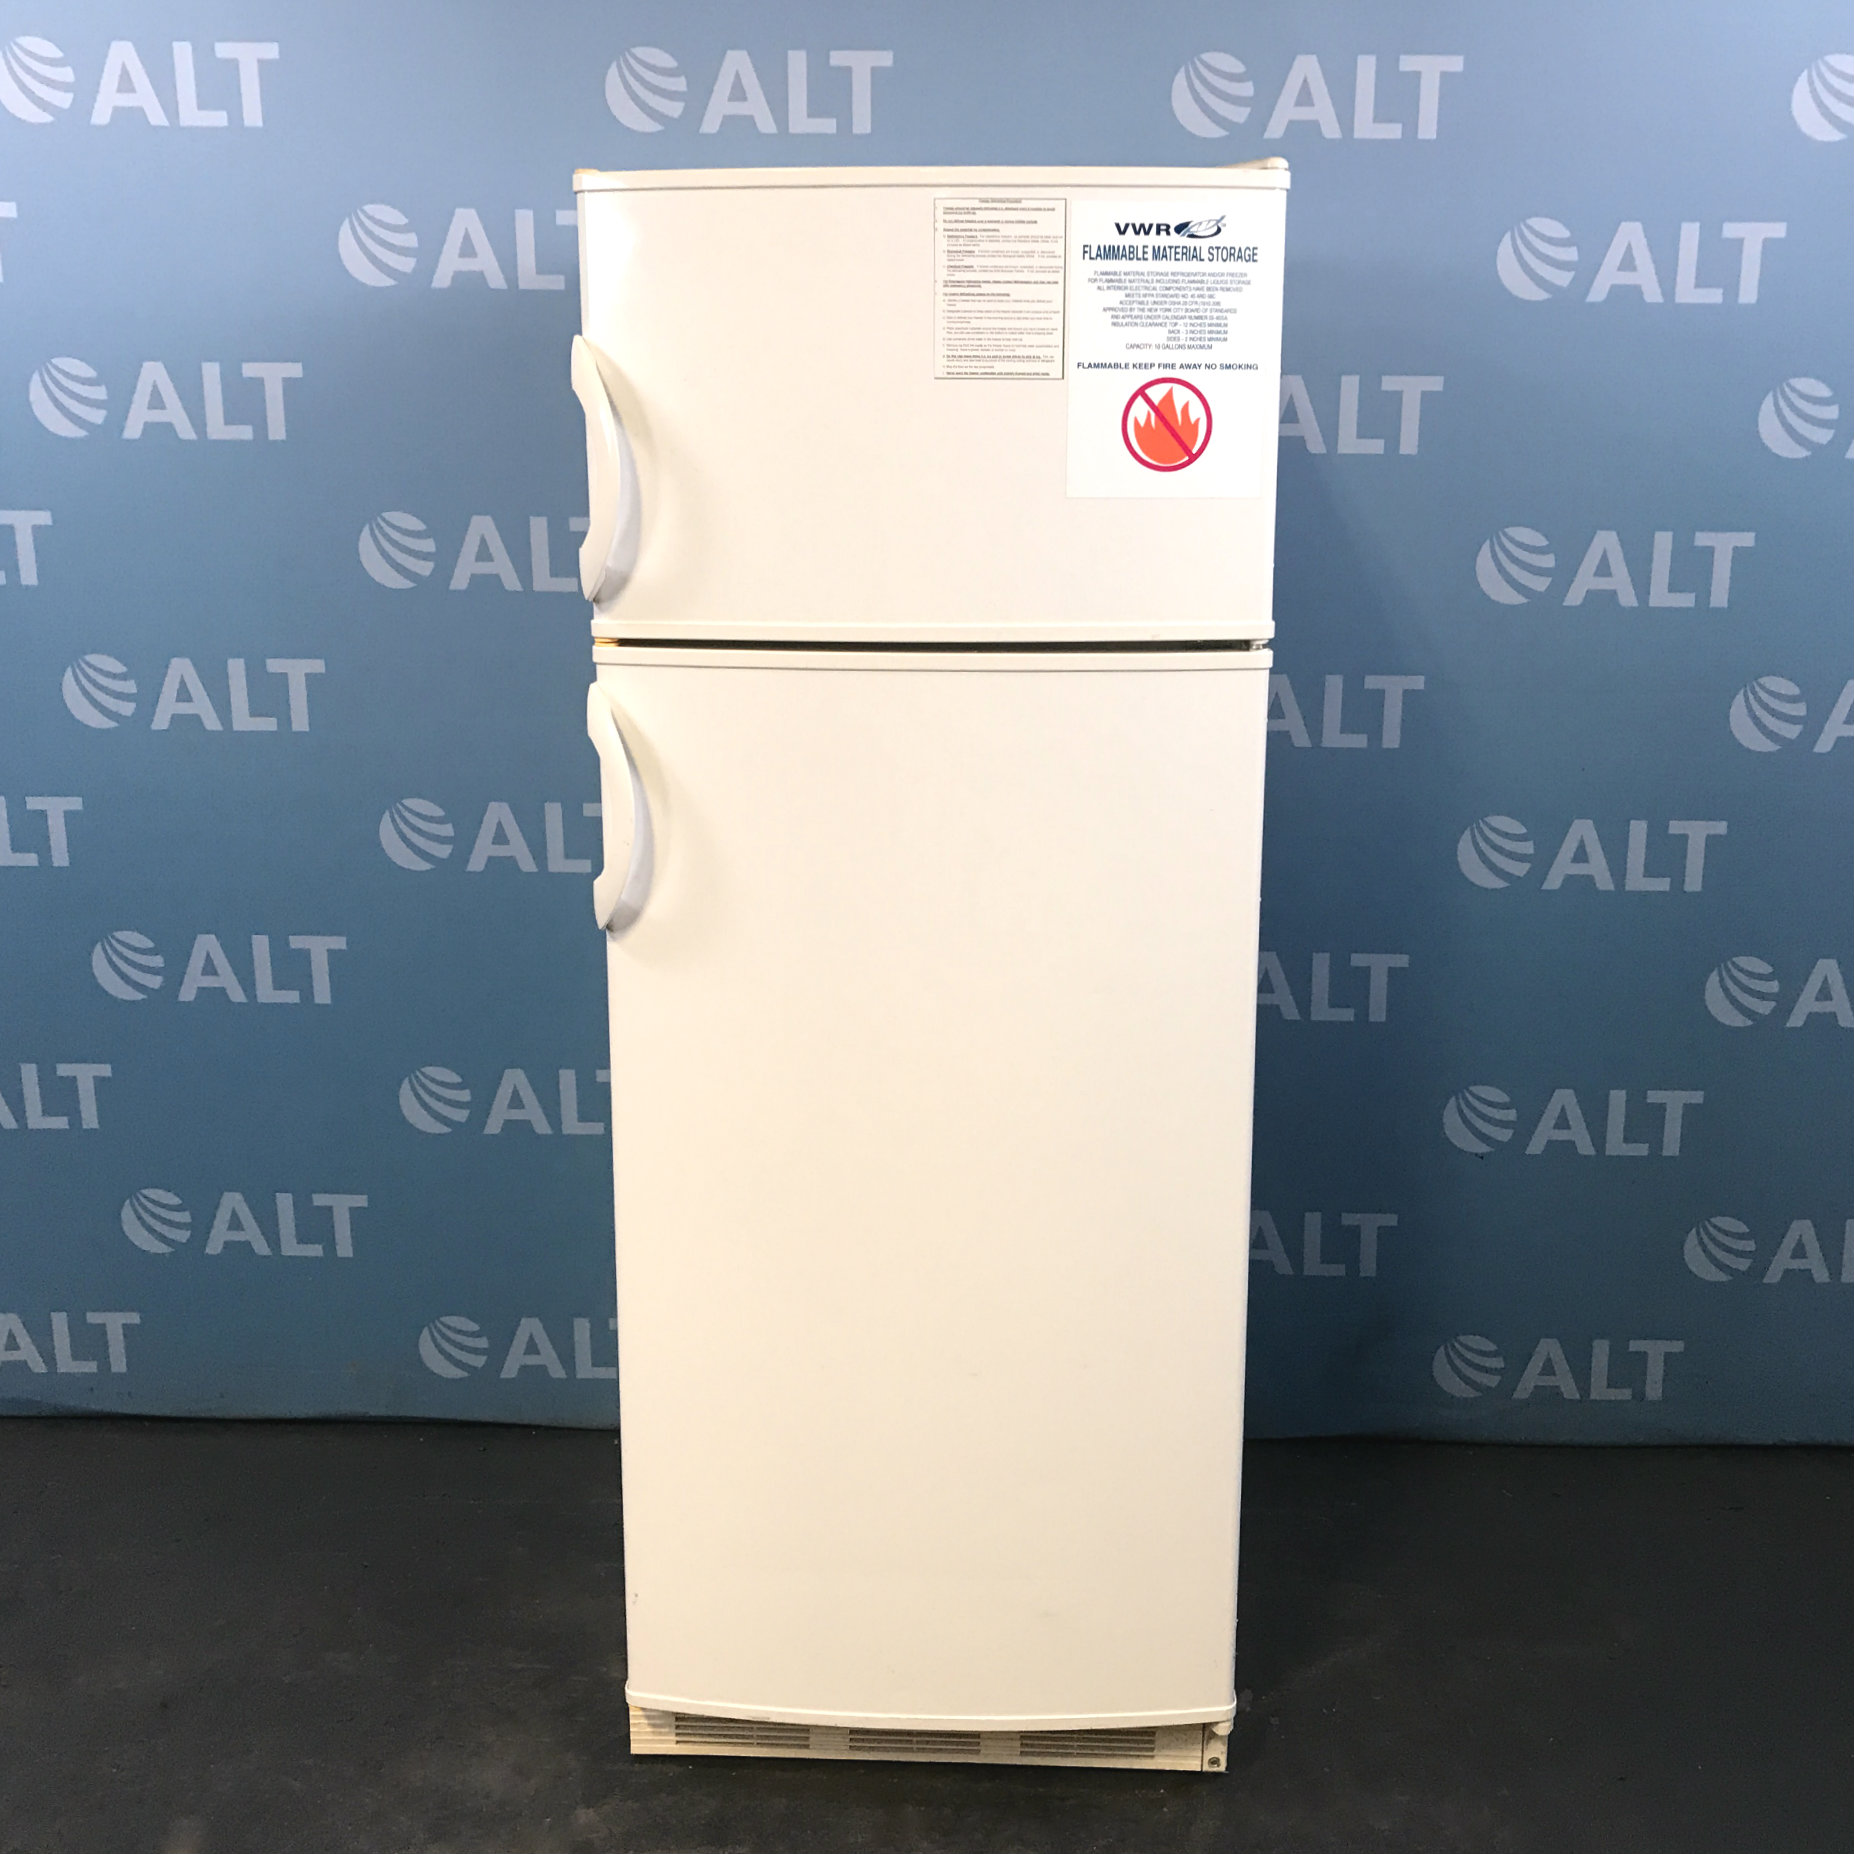 VWR Explosion Proof And Flammable Material Storage Refrigerator Model  47747 222 Image